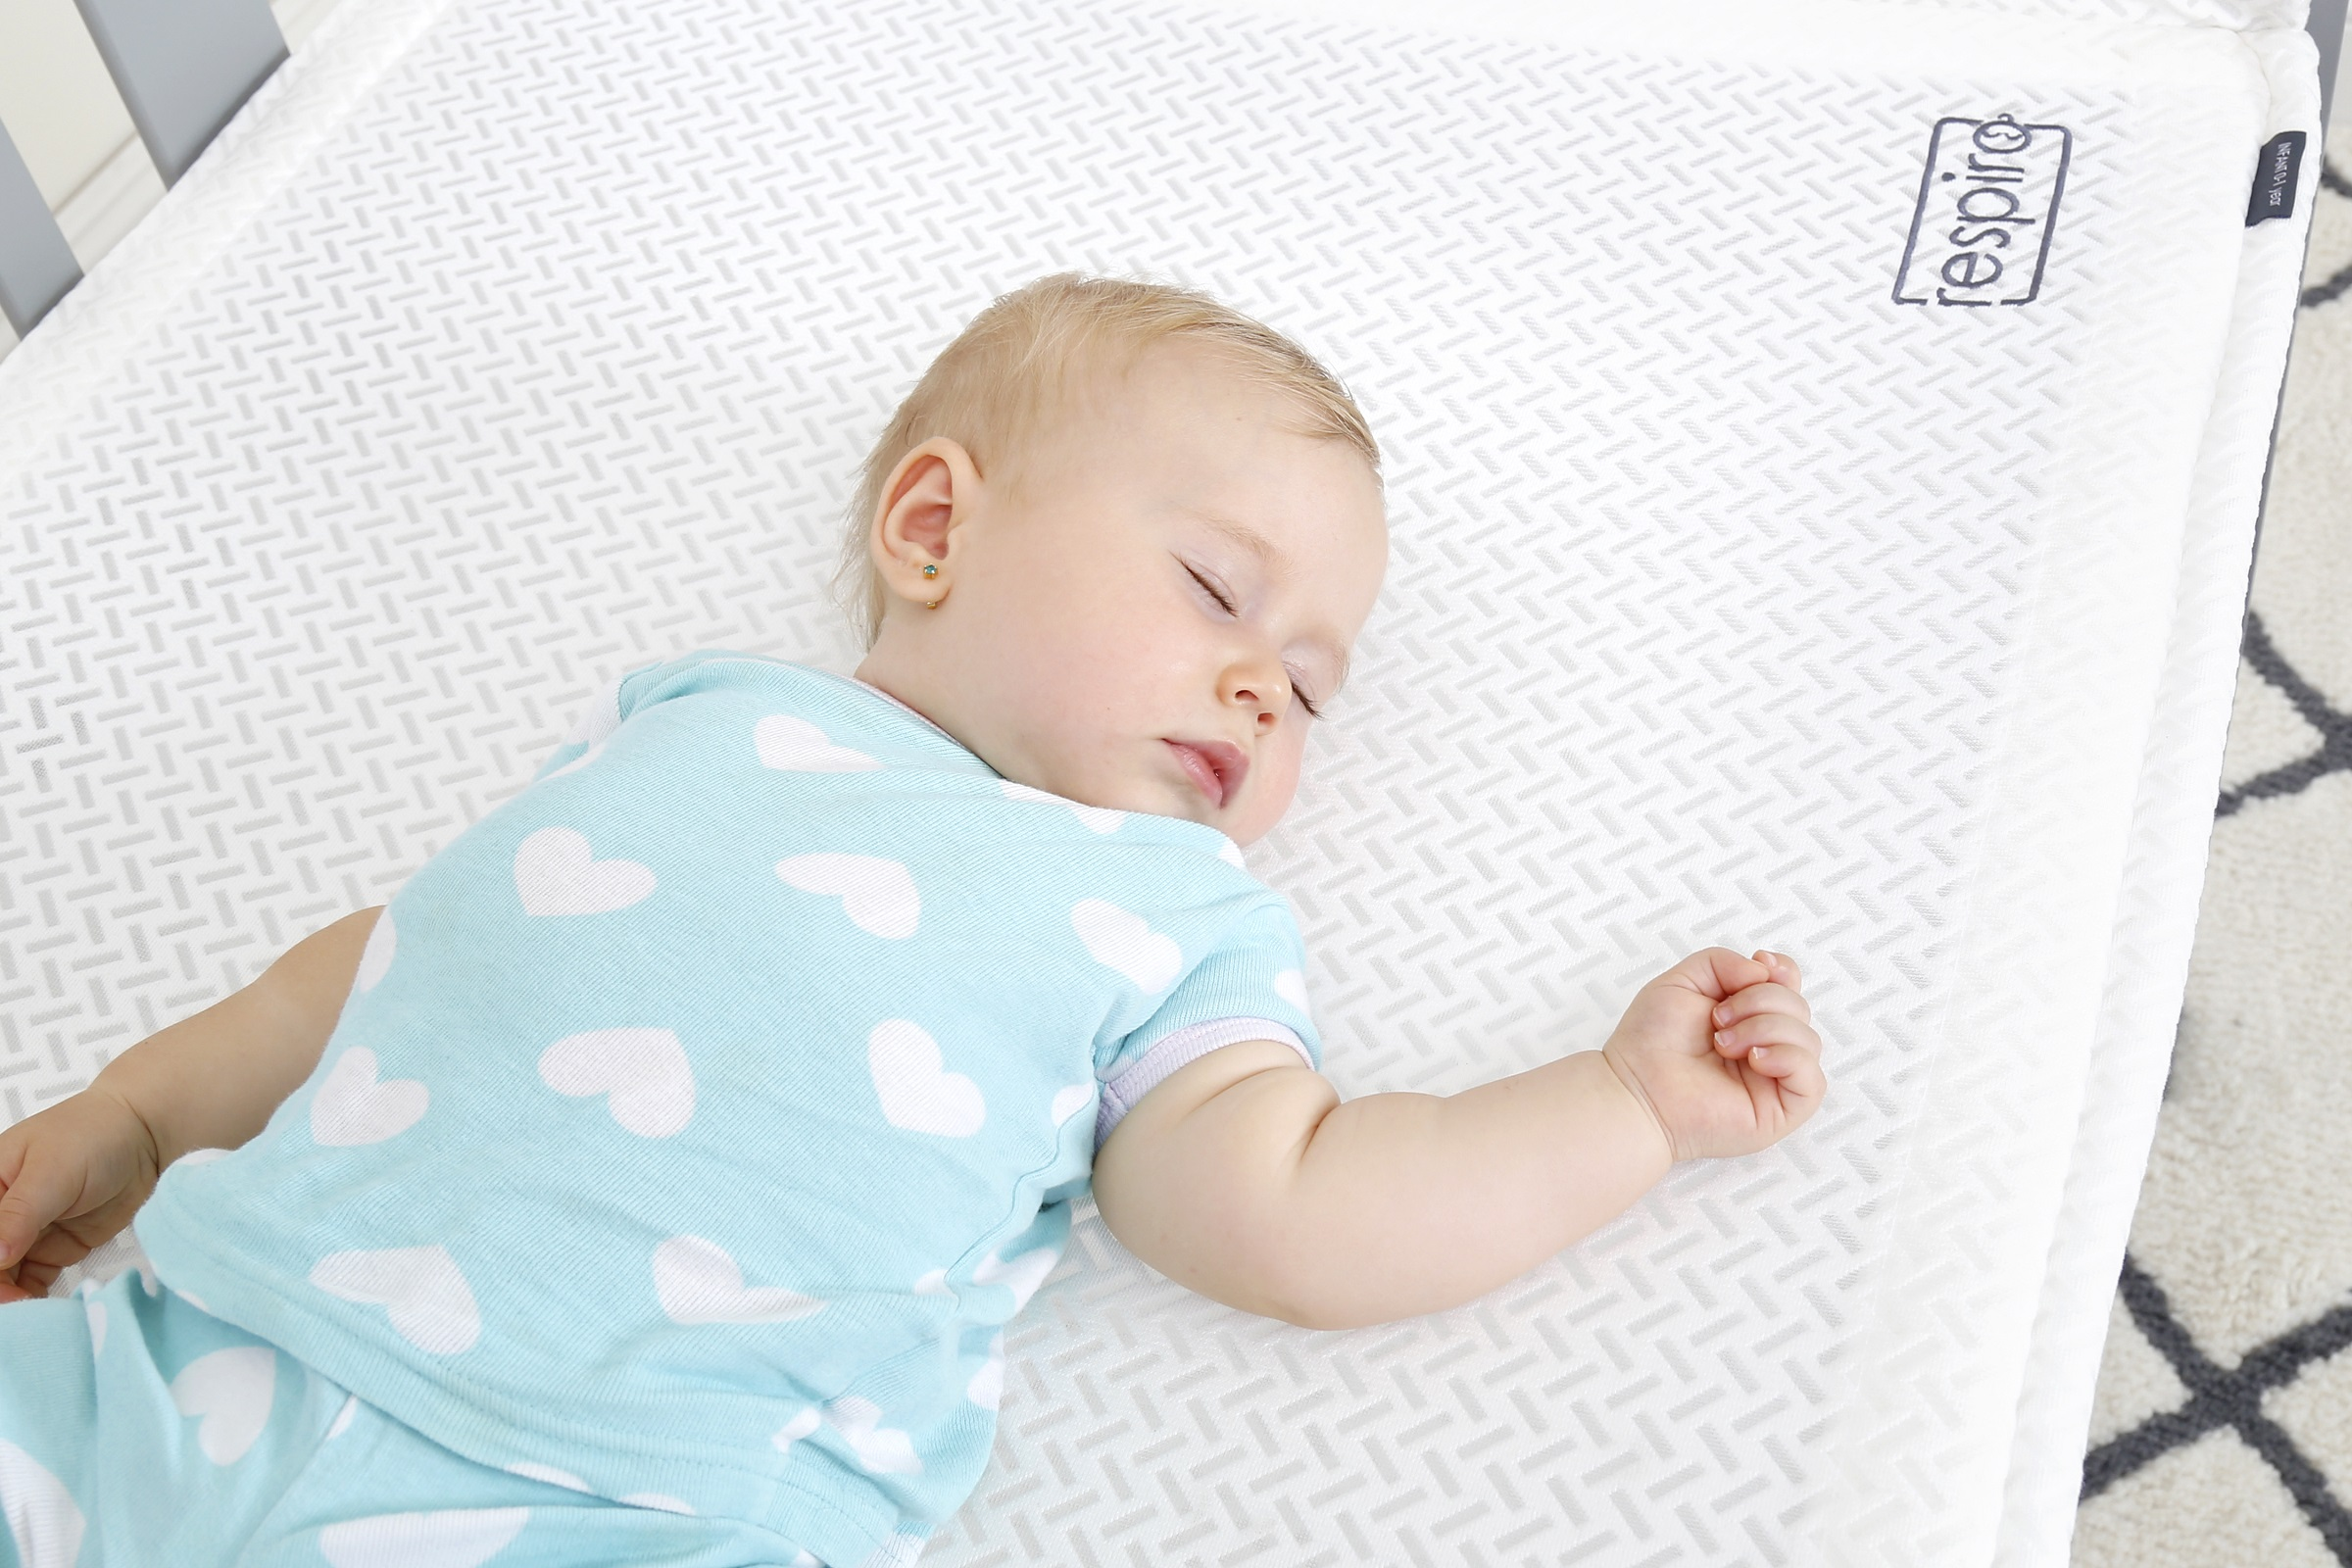 Baby Trend Launches The Respiro Crib Mattress With 100